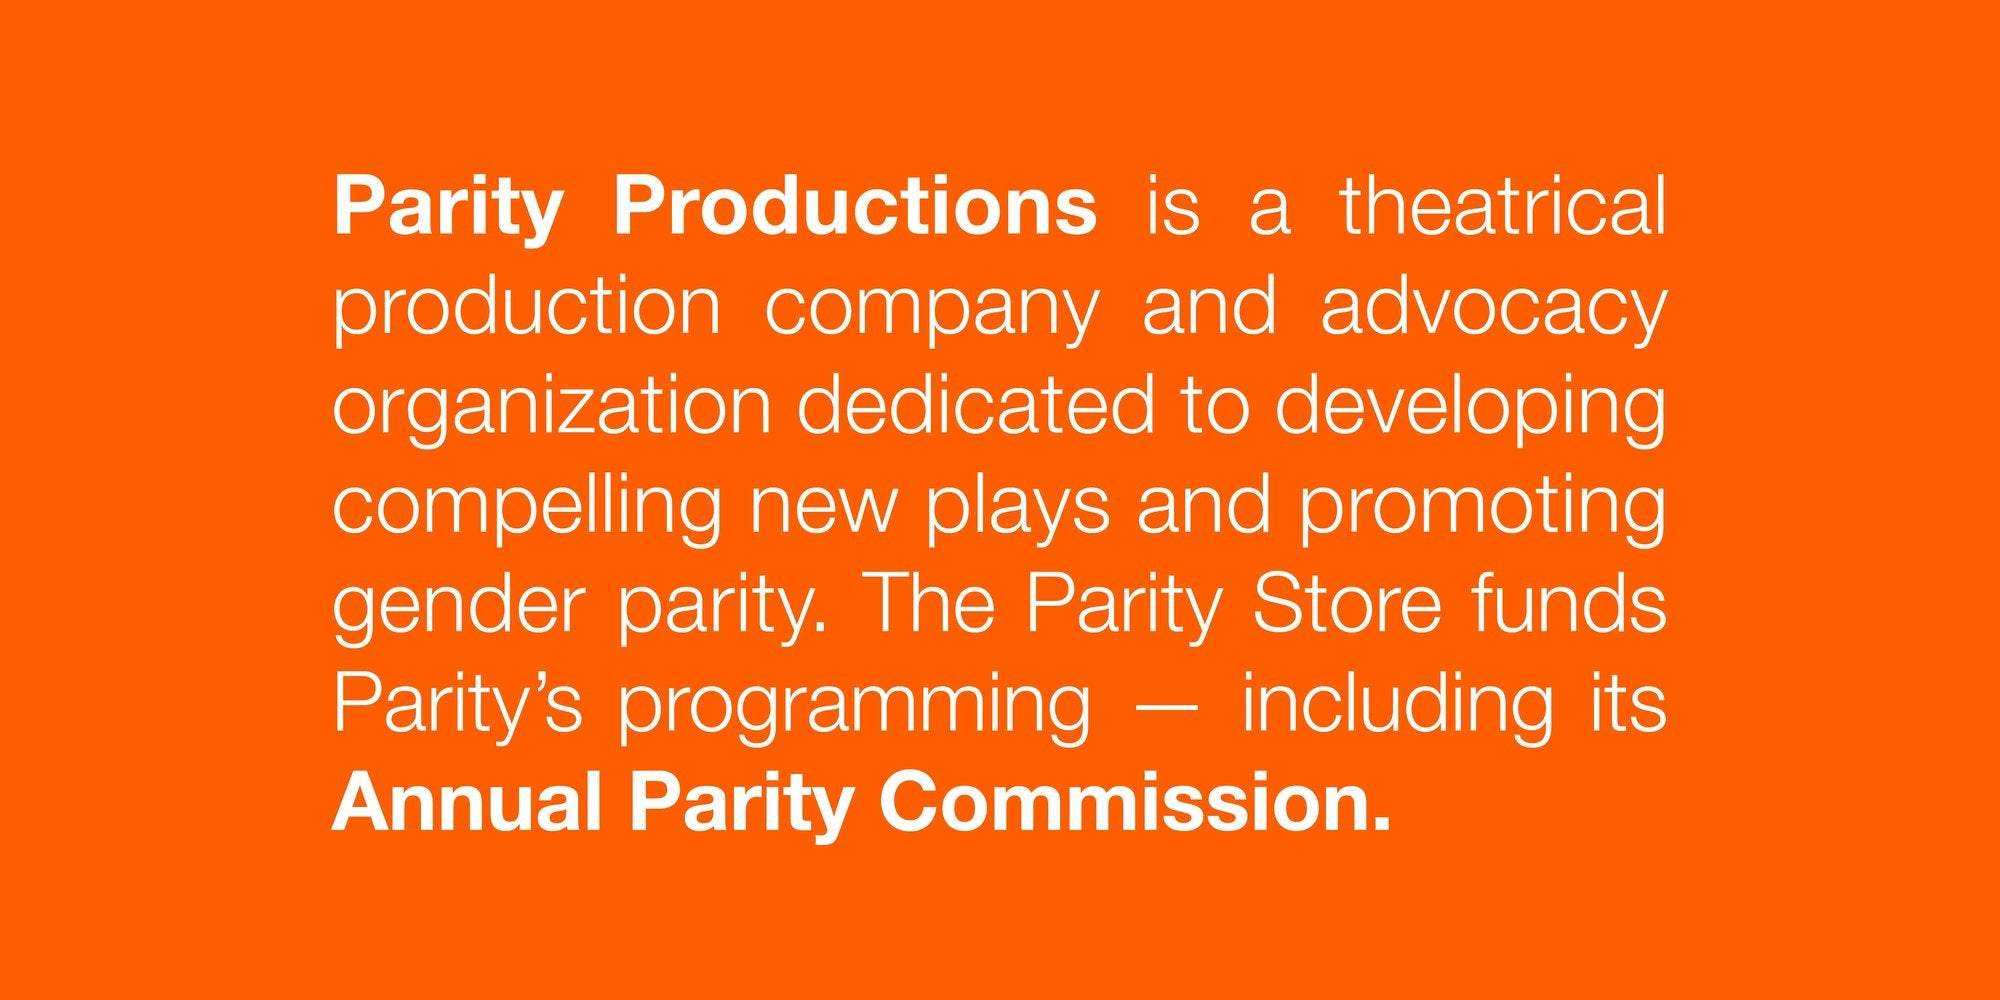 About Parity Productions